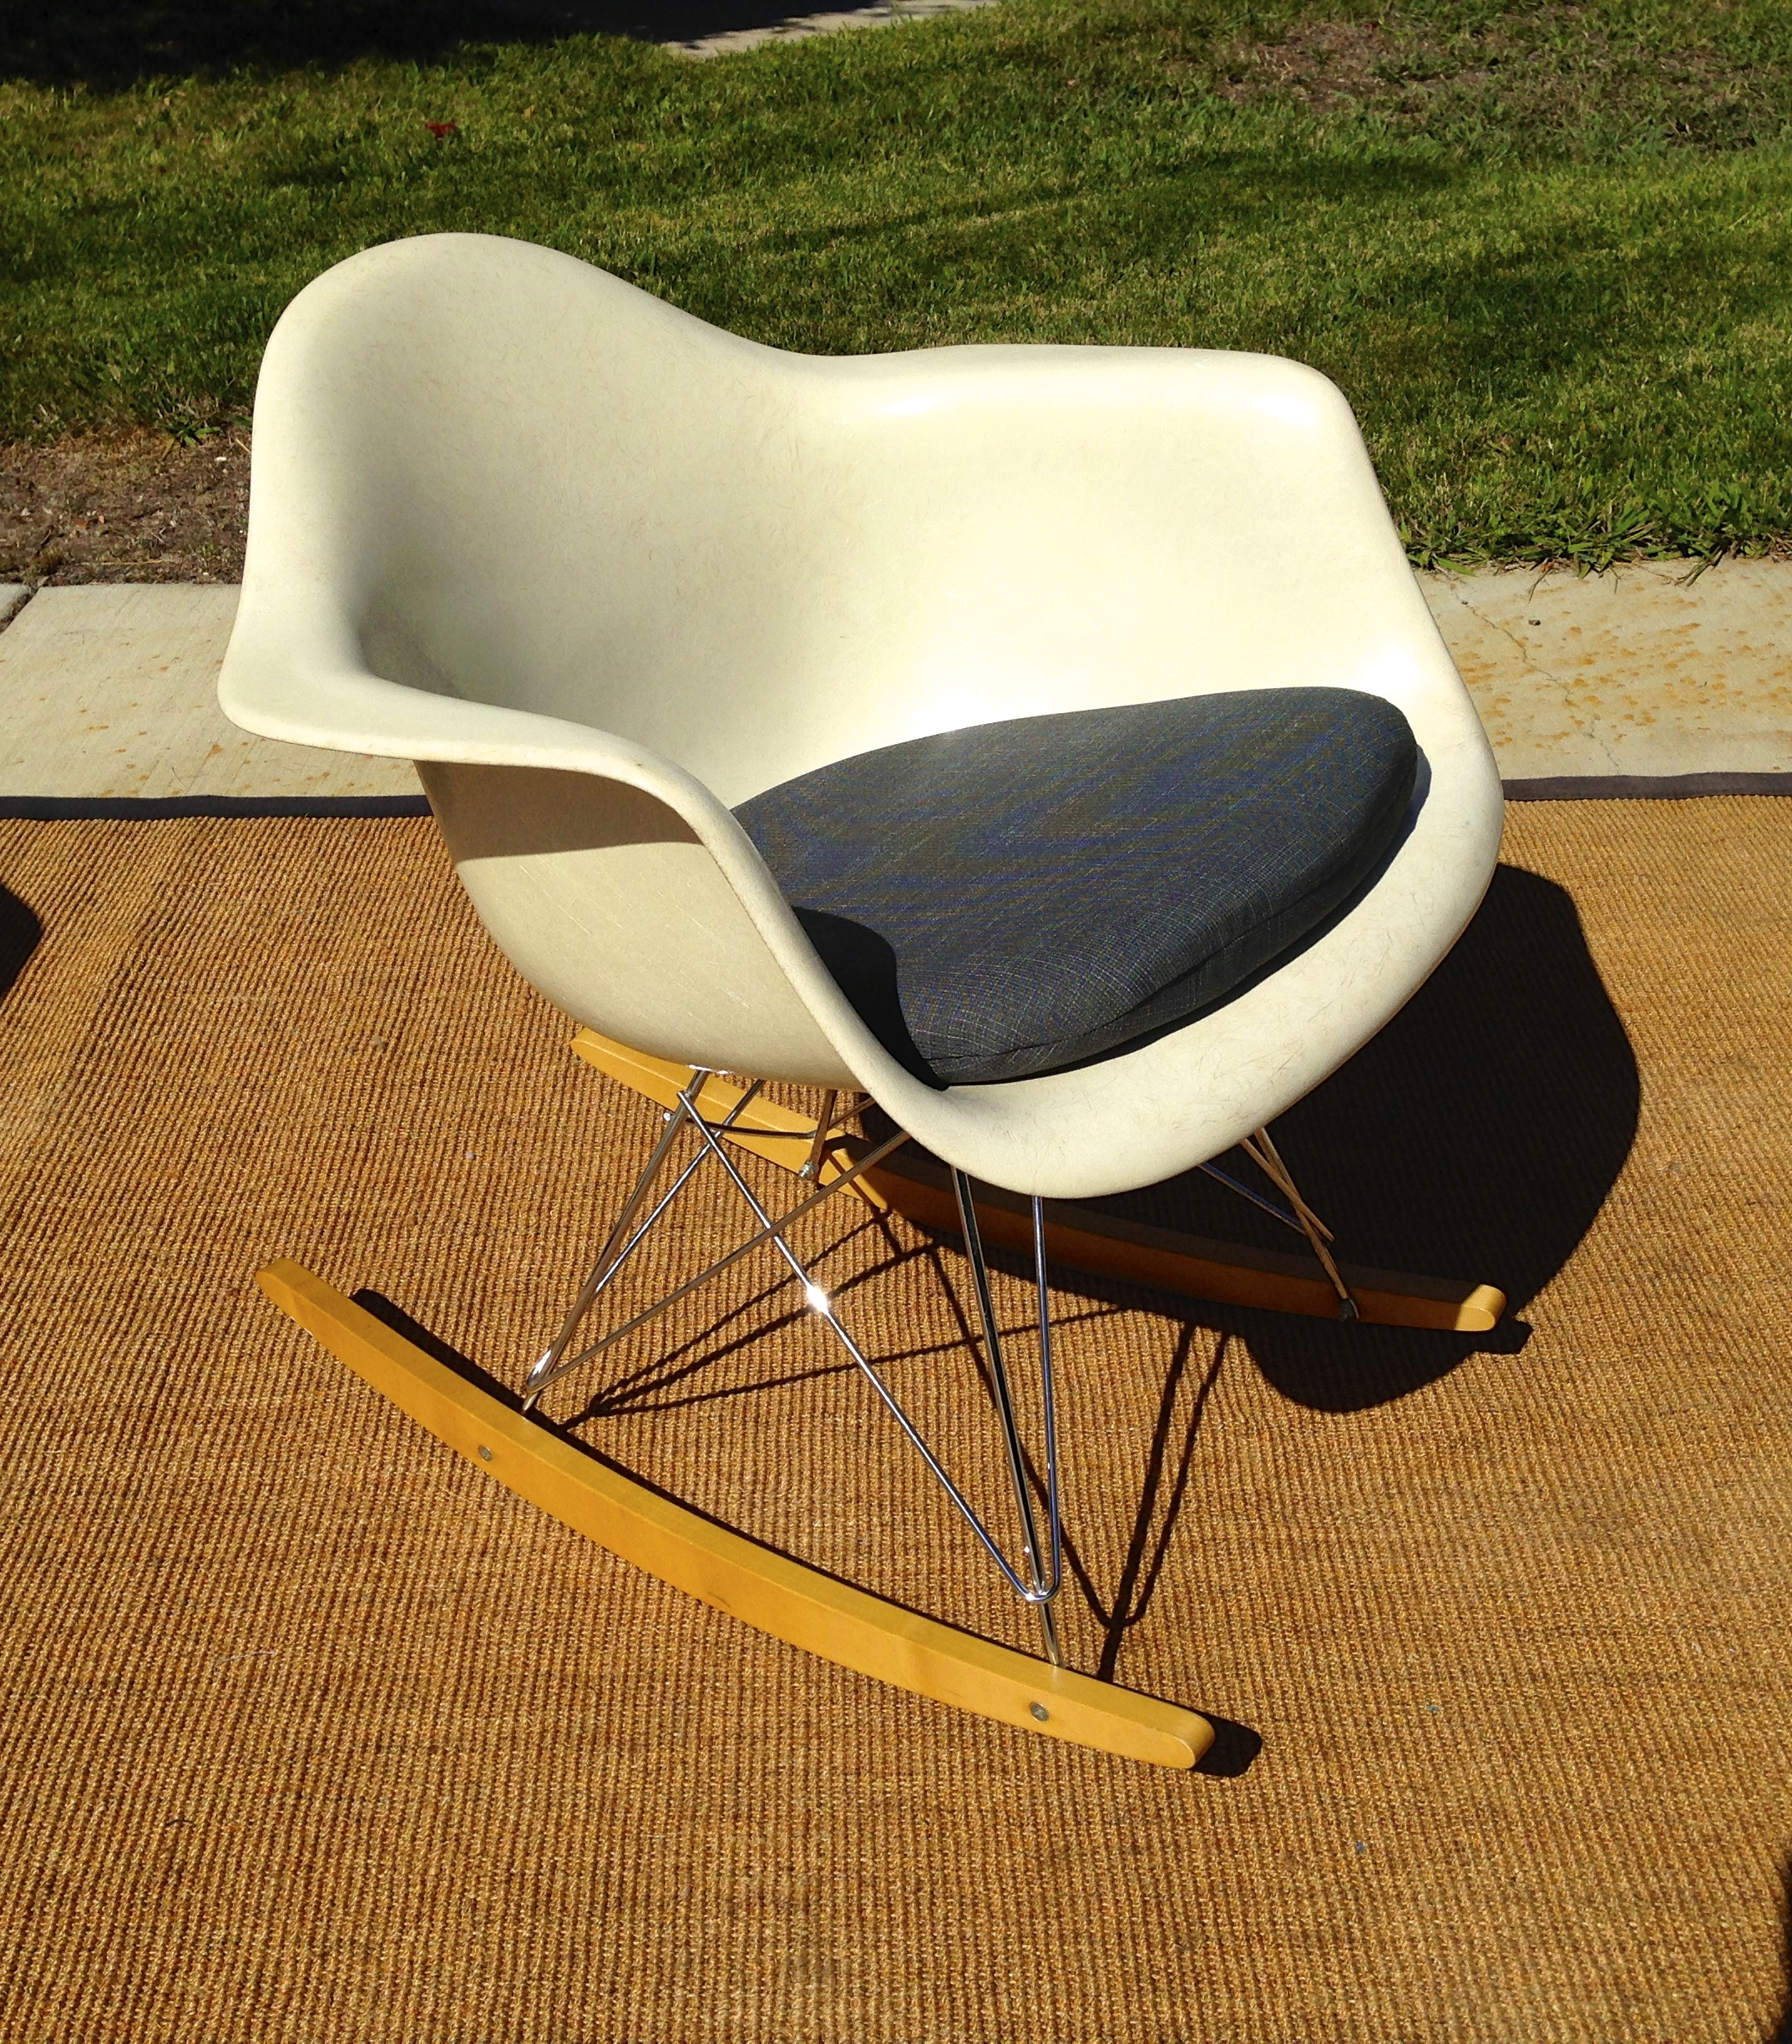 Eames Rocking Chair Vintage Vintage Eames RAR rocking chair in a